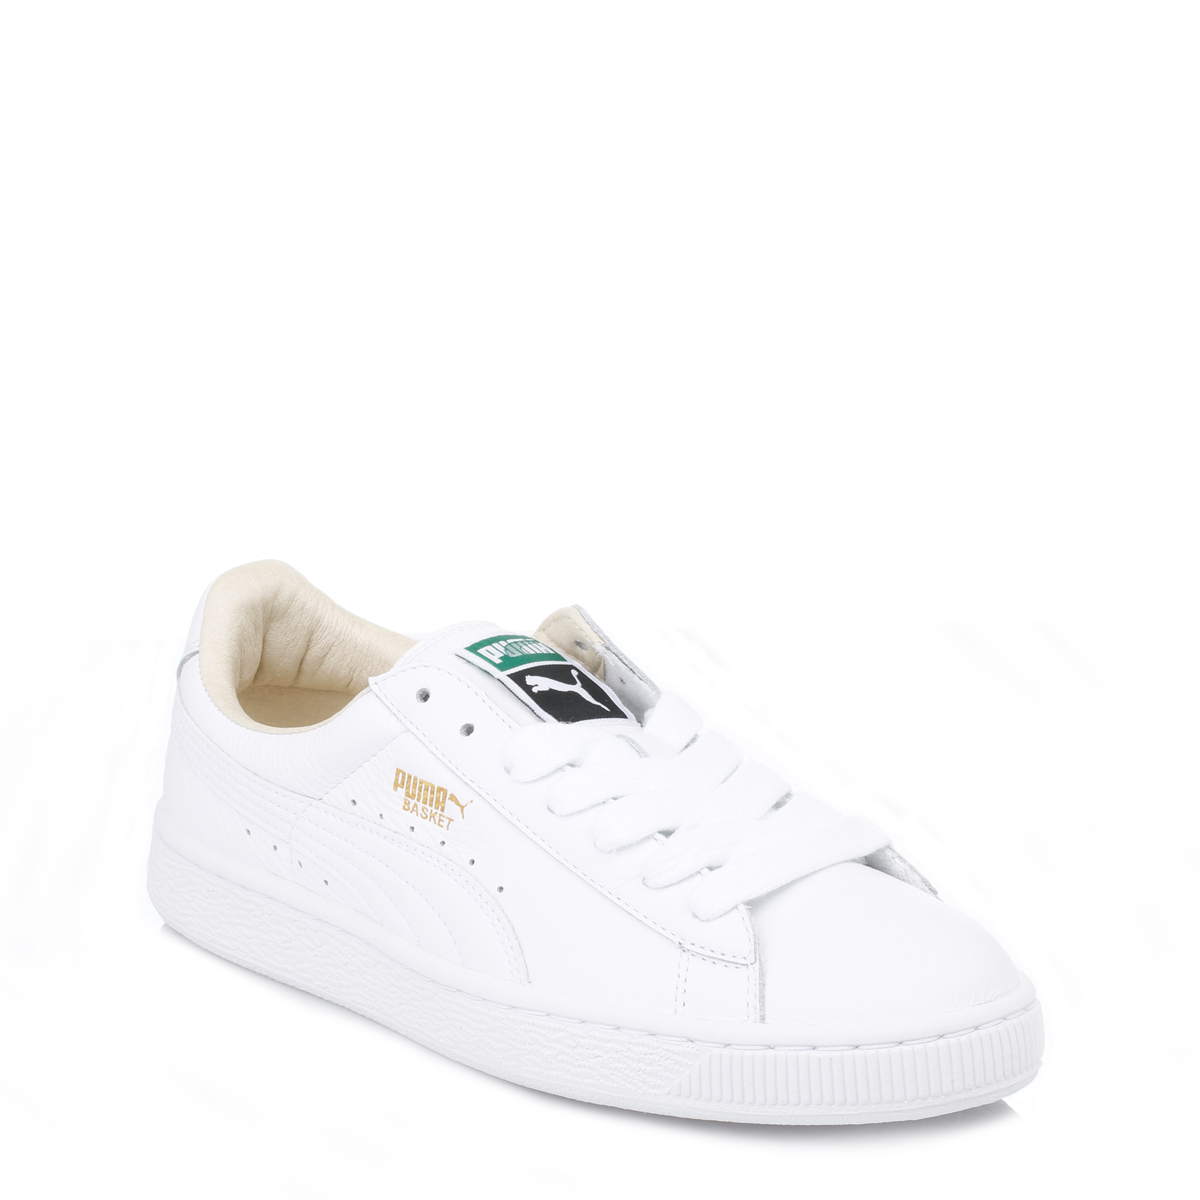 puma mens trainers lace up sport casual shoes white basket classic leather ebay. Black Bedroom Furniture Sets. Home Design Ideas